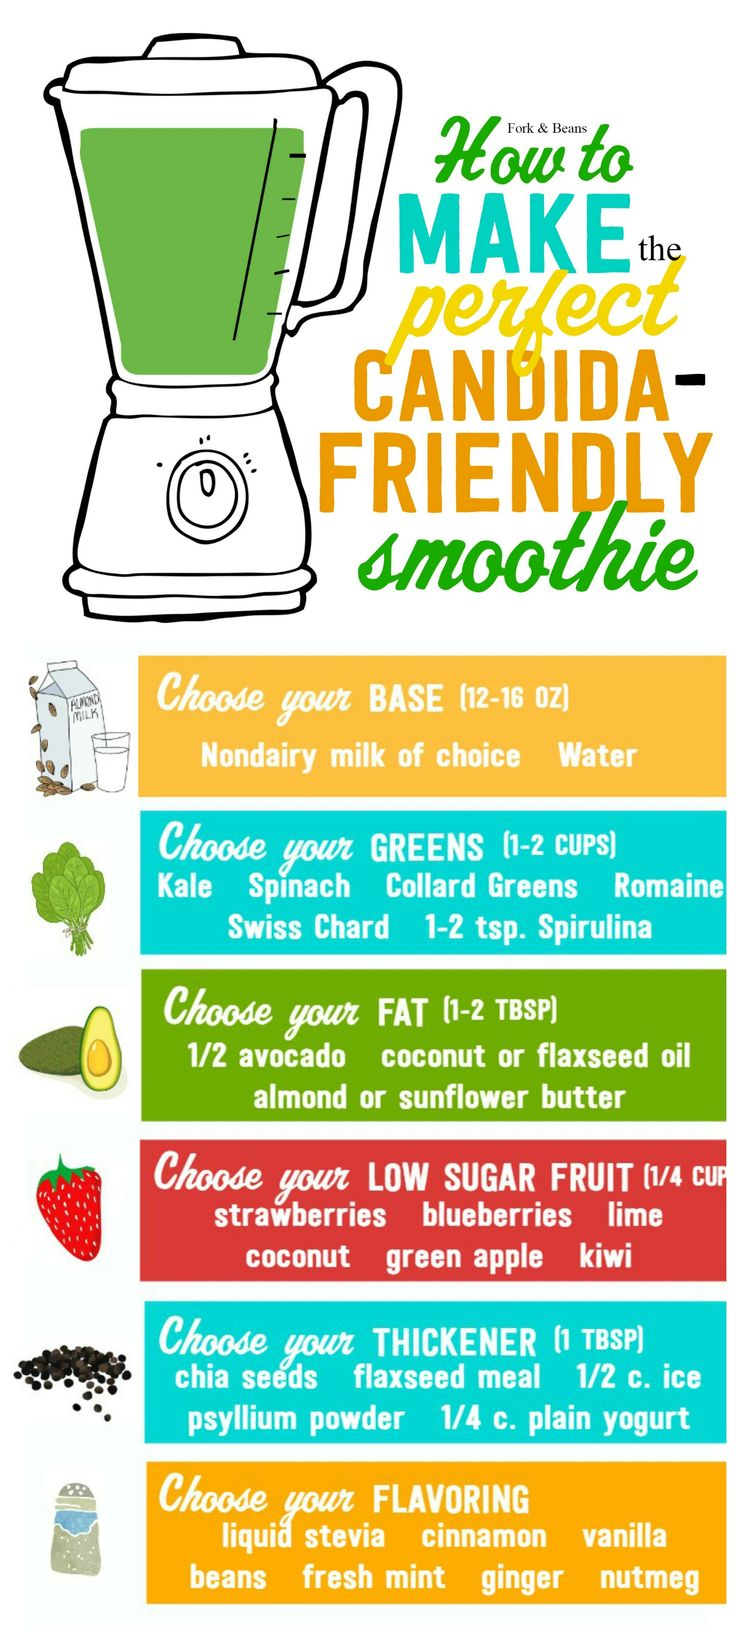 Your guide to creating your own easy, healthy, and low sugar green smoothie, perfect for those on an anti-candida diet.